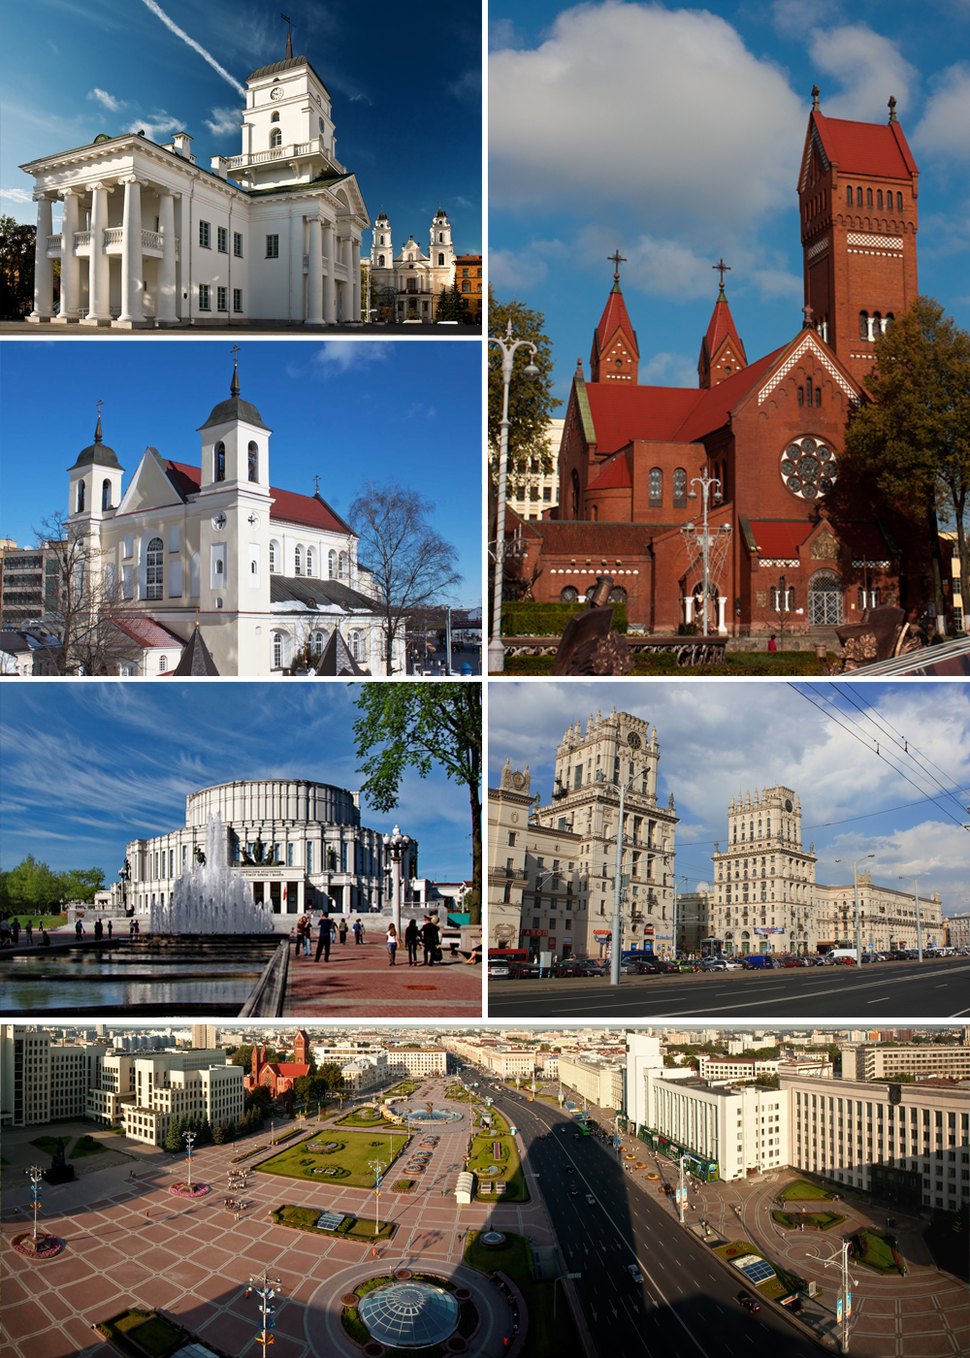 Clockwise from top left: Minsk City Hall, the Red Church, Railway Station Square, Independence Square, National Opera and Ballet Theatre and the Church of Sts. Peter and Paul.